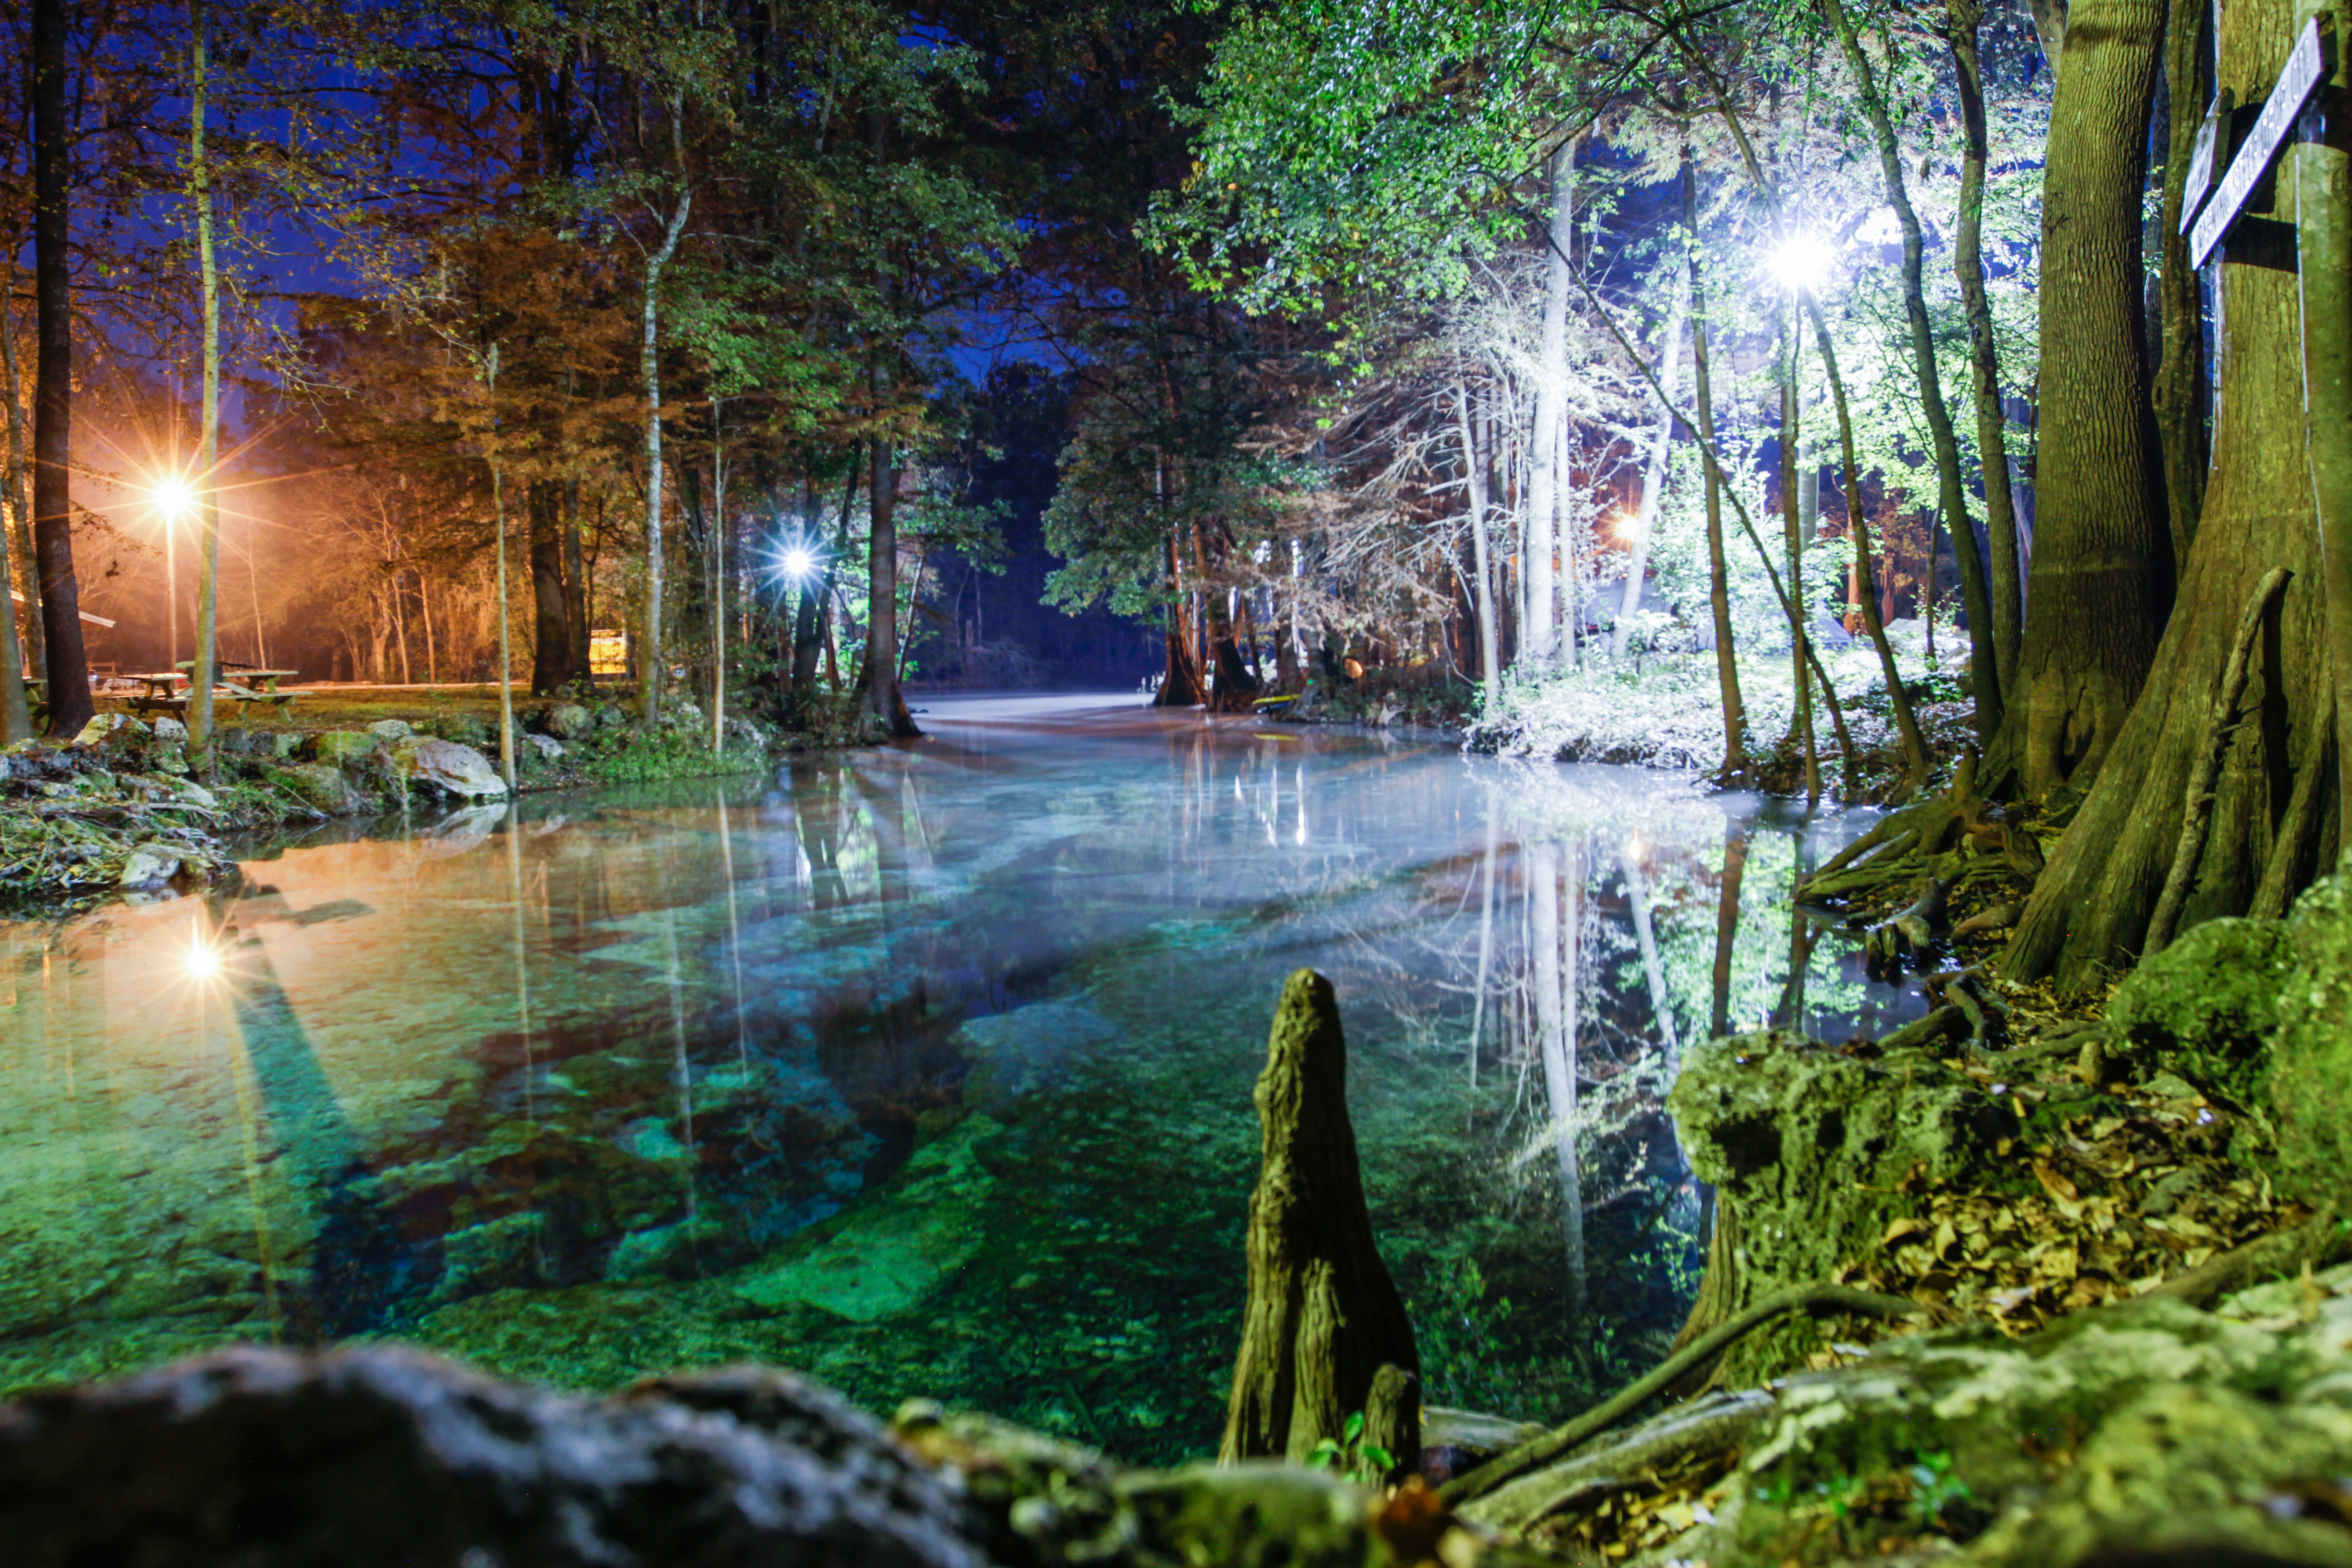 Water & Electric Sites | Ginnie Springs Outdoors | High ... on cozumel map, silver river state park map, manatee springs map, st. andrews state park map, caladesi island state park map, ichetucknee state park map, vortex springs map, peacock springs map, weeki wachee springs map, john pennekamp coral reef state park map, oscar scherer state park map, ponce de leon springs map, gilchrist county map, poe springs map, telford map, suwannee river state park map, alexander springs map, high springs fl map, long key state park map, the devil's highway map,